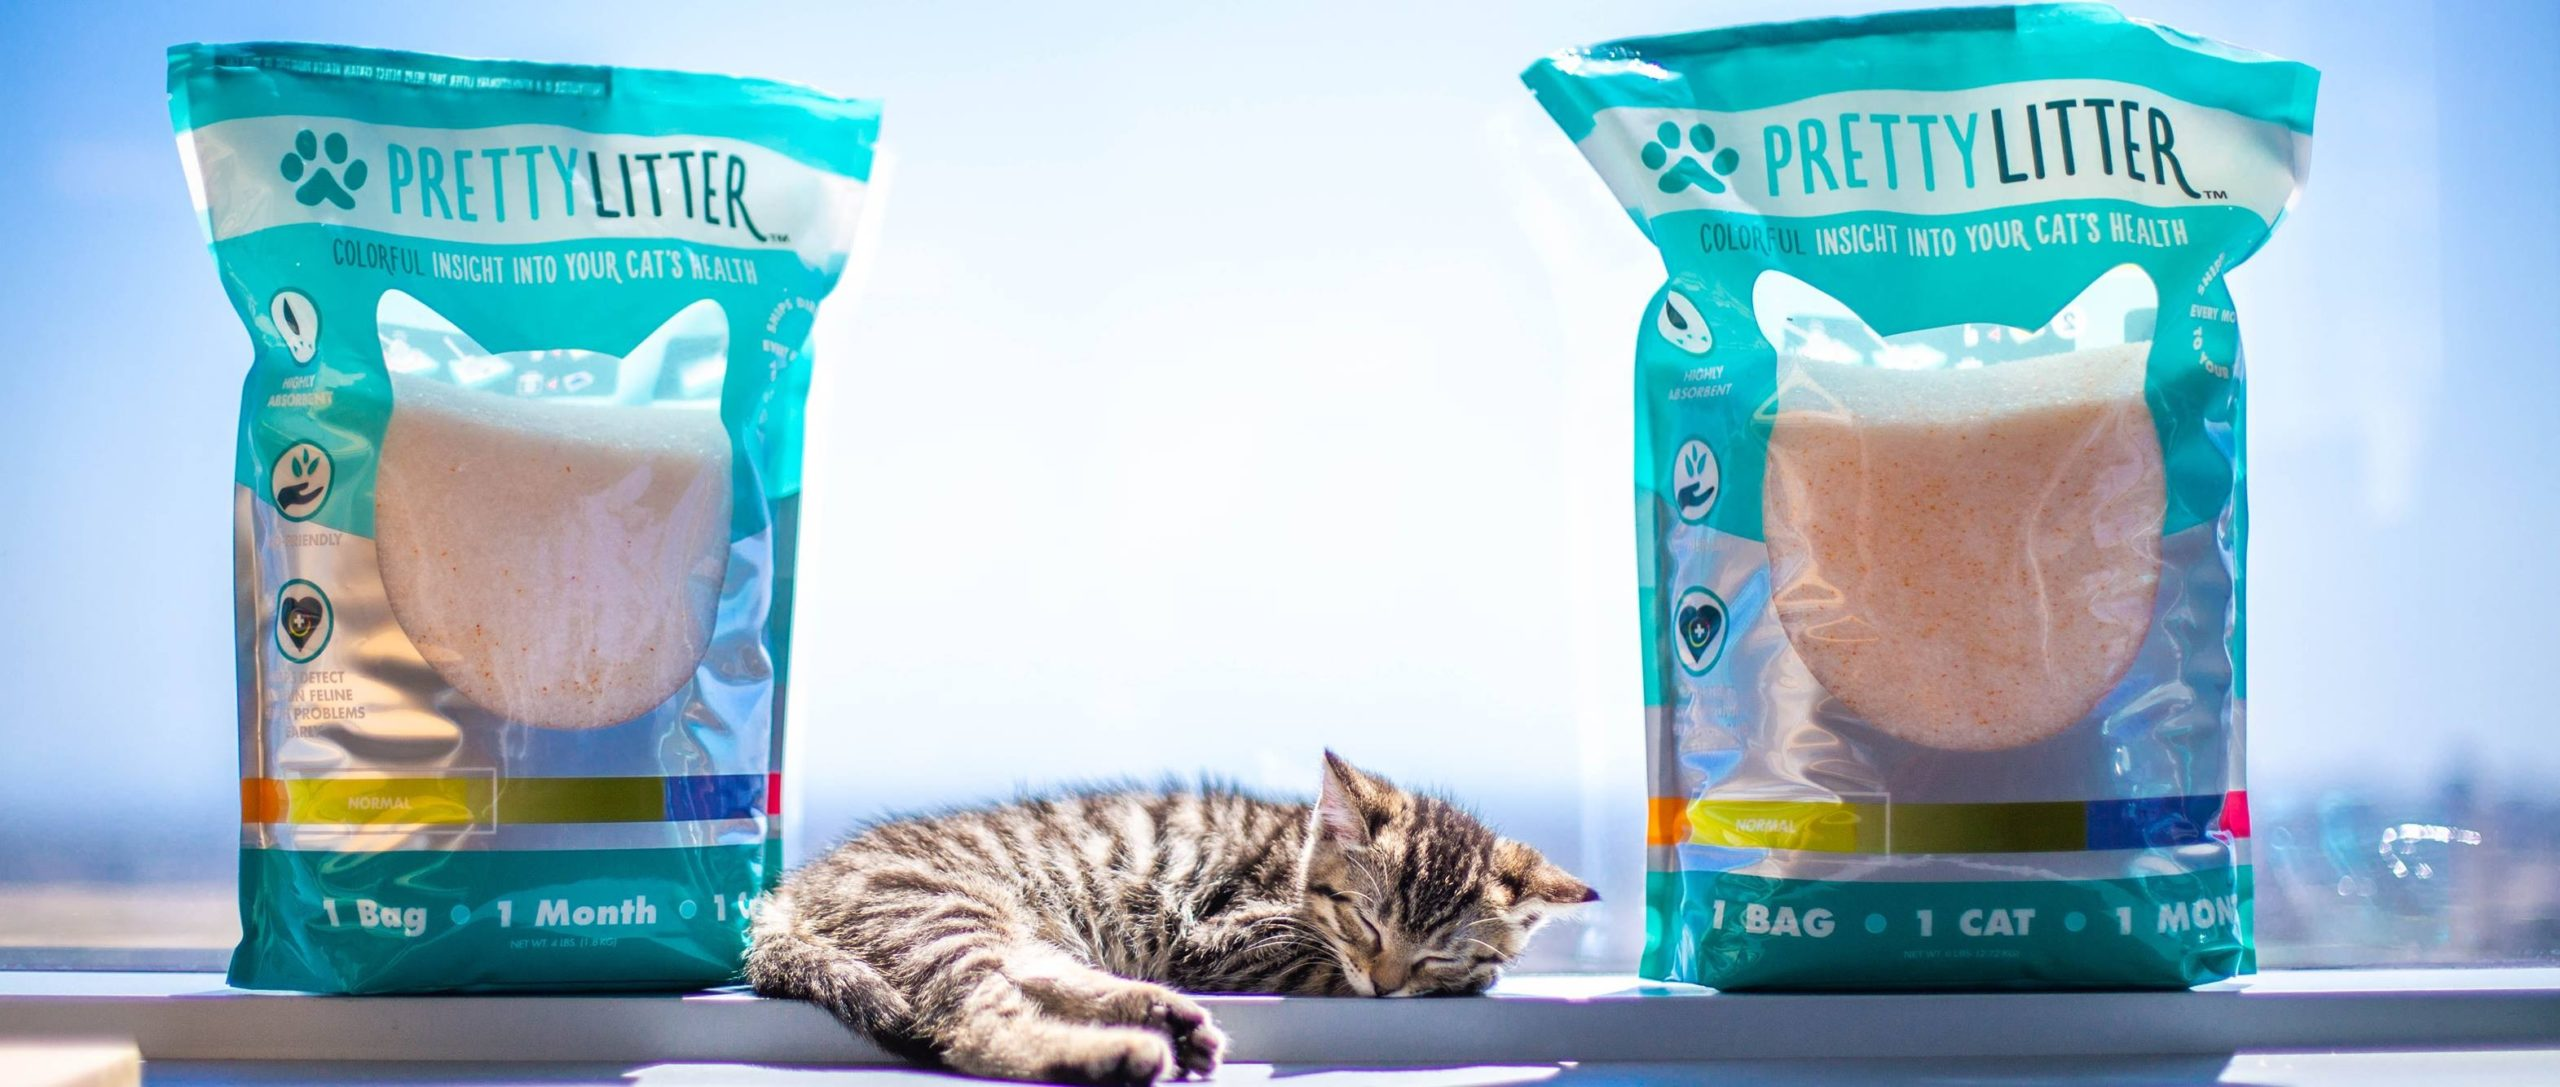 prettylitters cat litters medical diagnosis